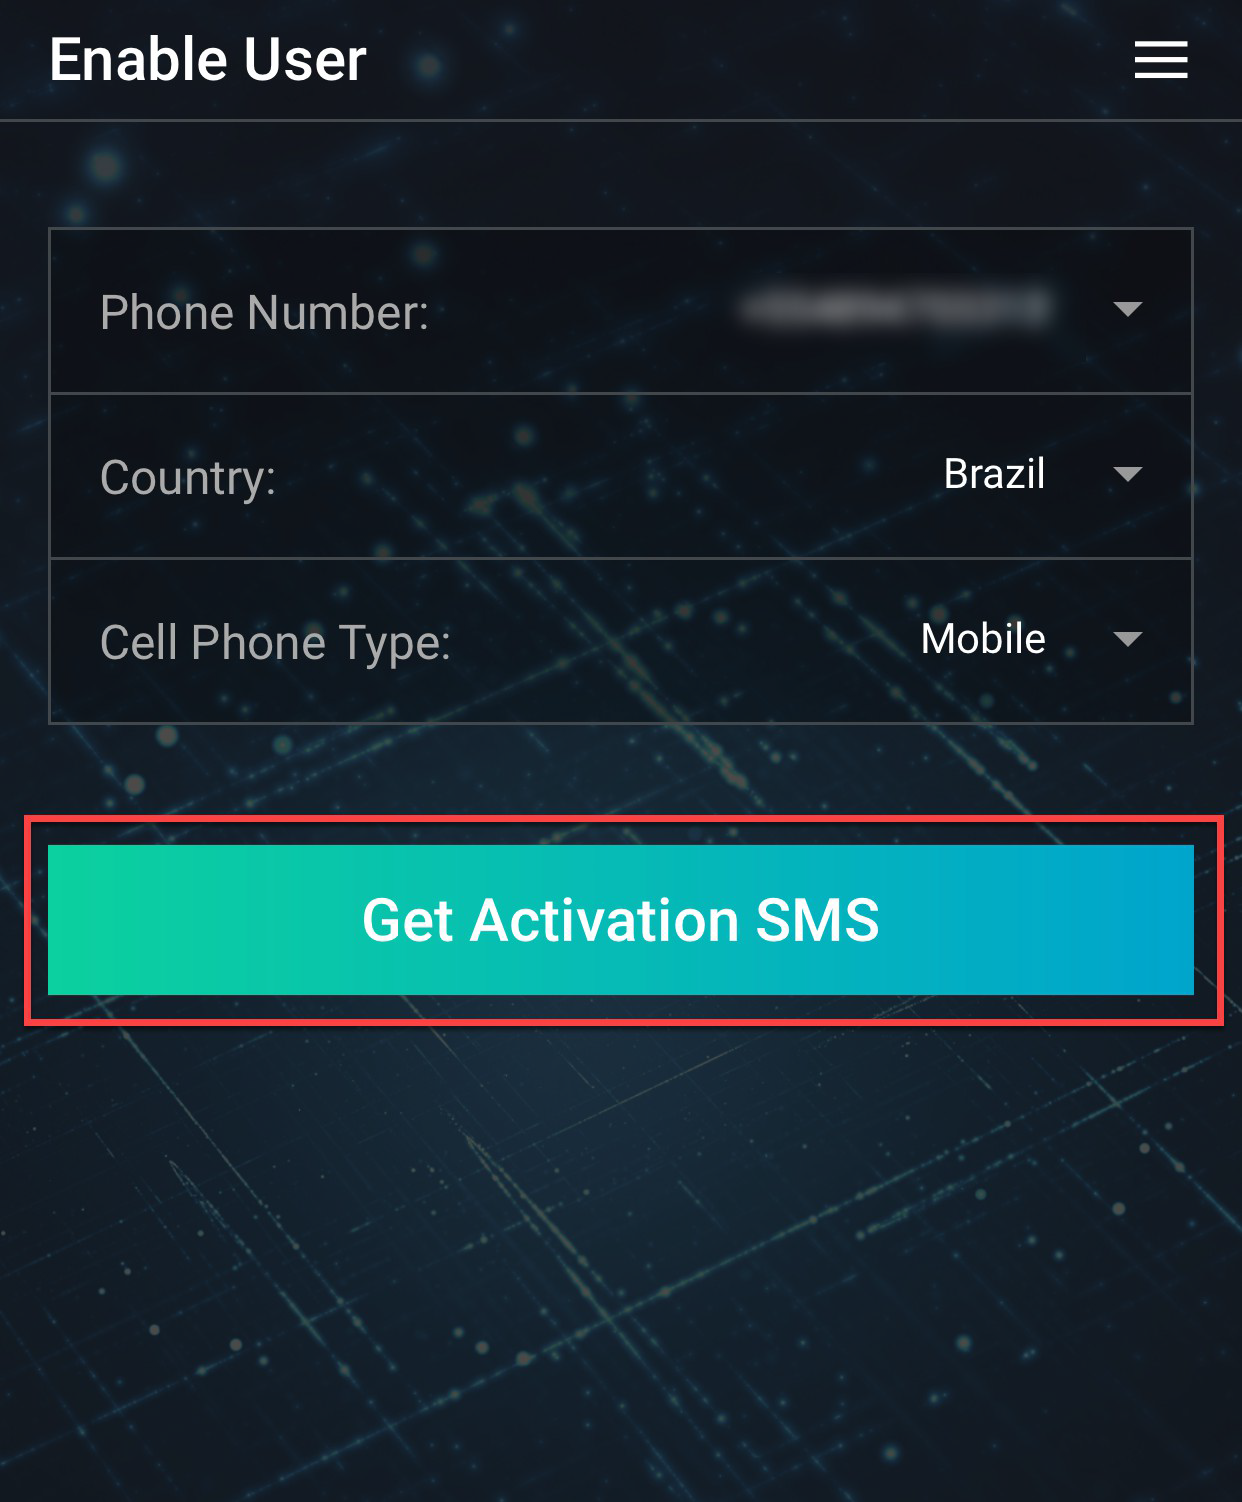 IB Key - Click Get Activation SMS